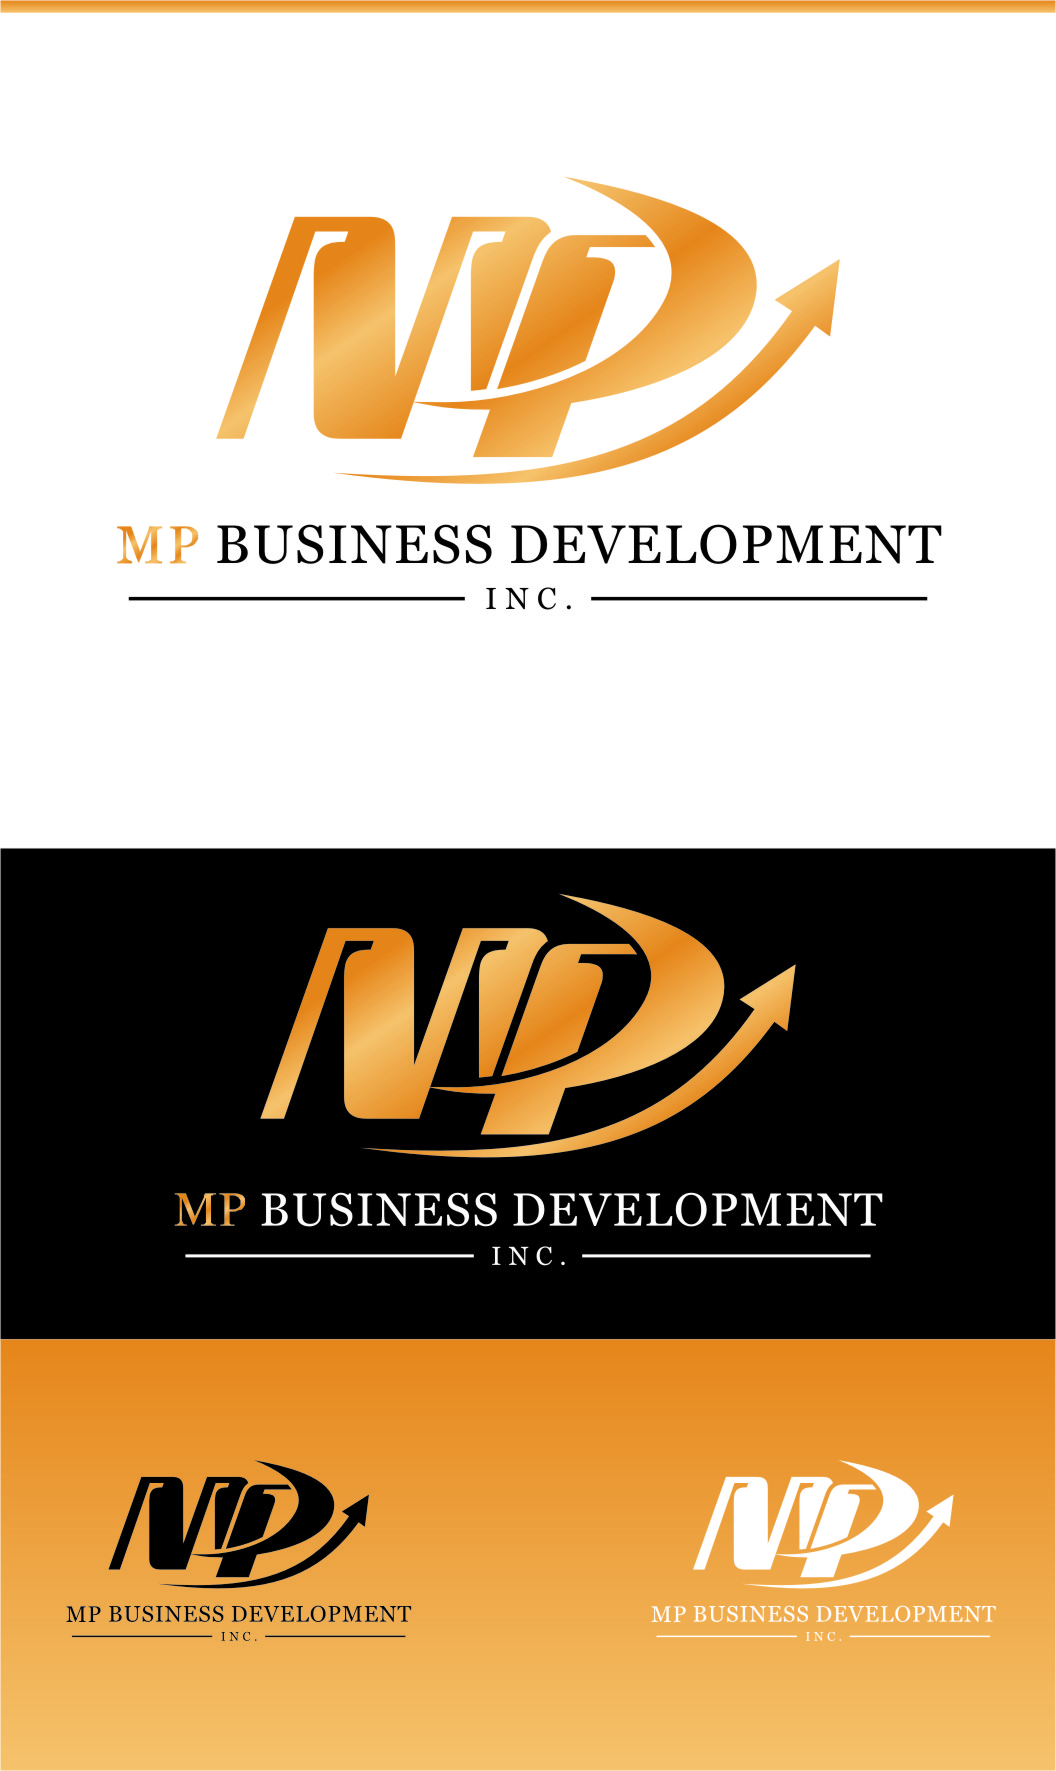 Logo Design by RasYa Muhammad Athaya - Entry No. 178 in the Logo Design Contest MP Business Development Inc. Logo Design.